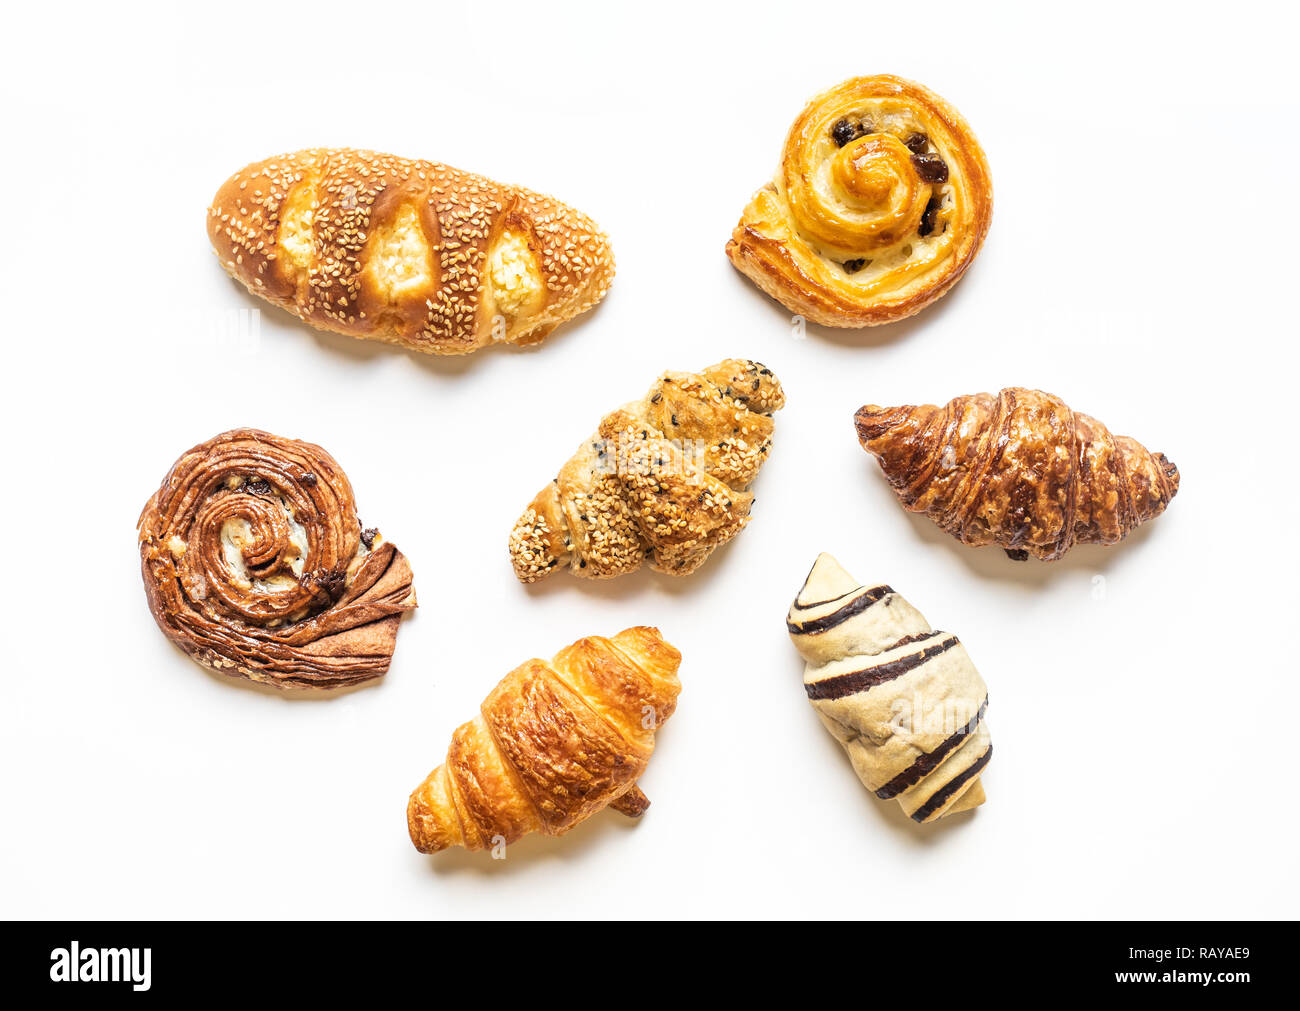 Top view of bread and bakery set on blue color background.Food and healthy concepts images - Stock Image